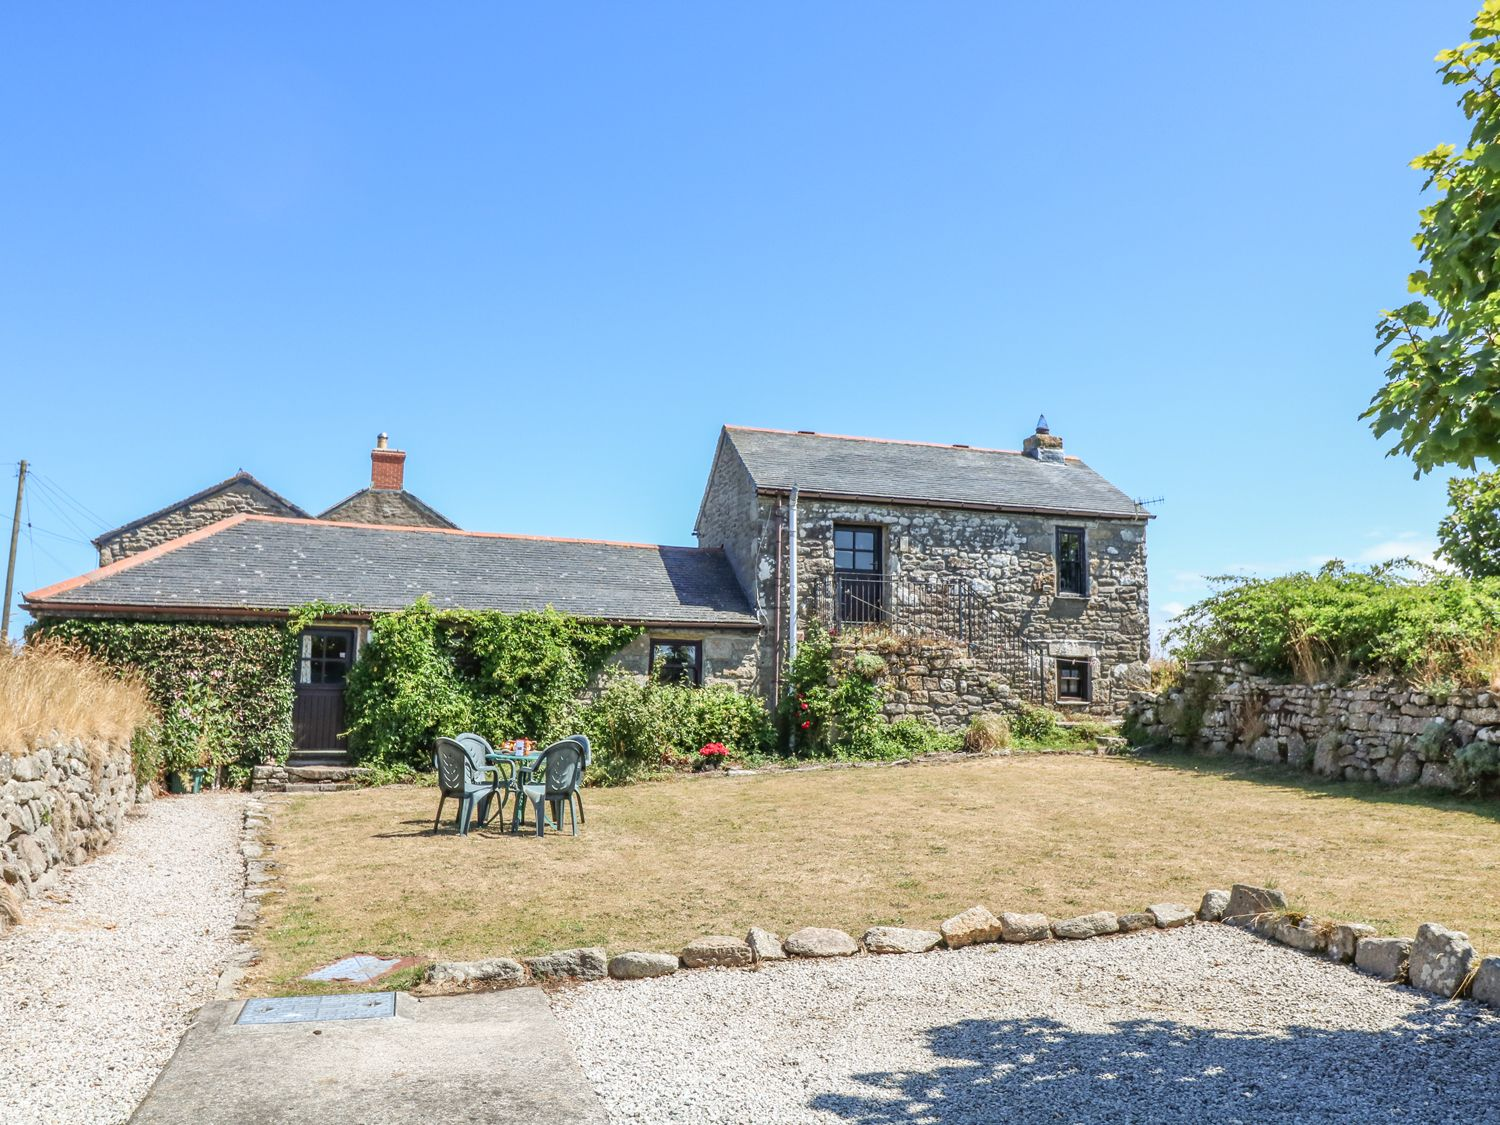 The Old Barn, Pendeen, Cornwall